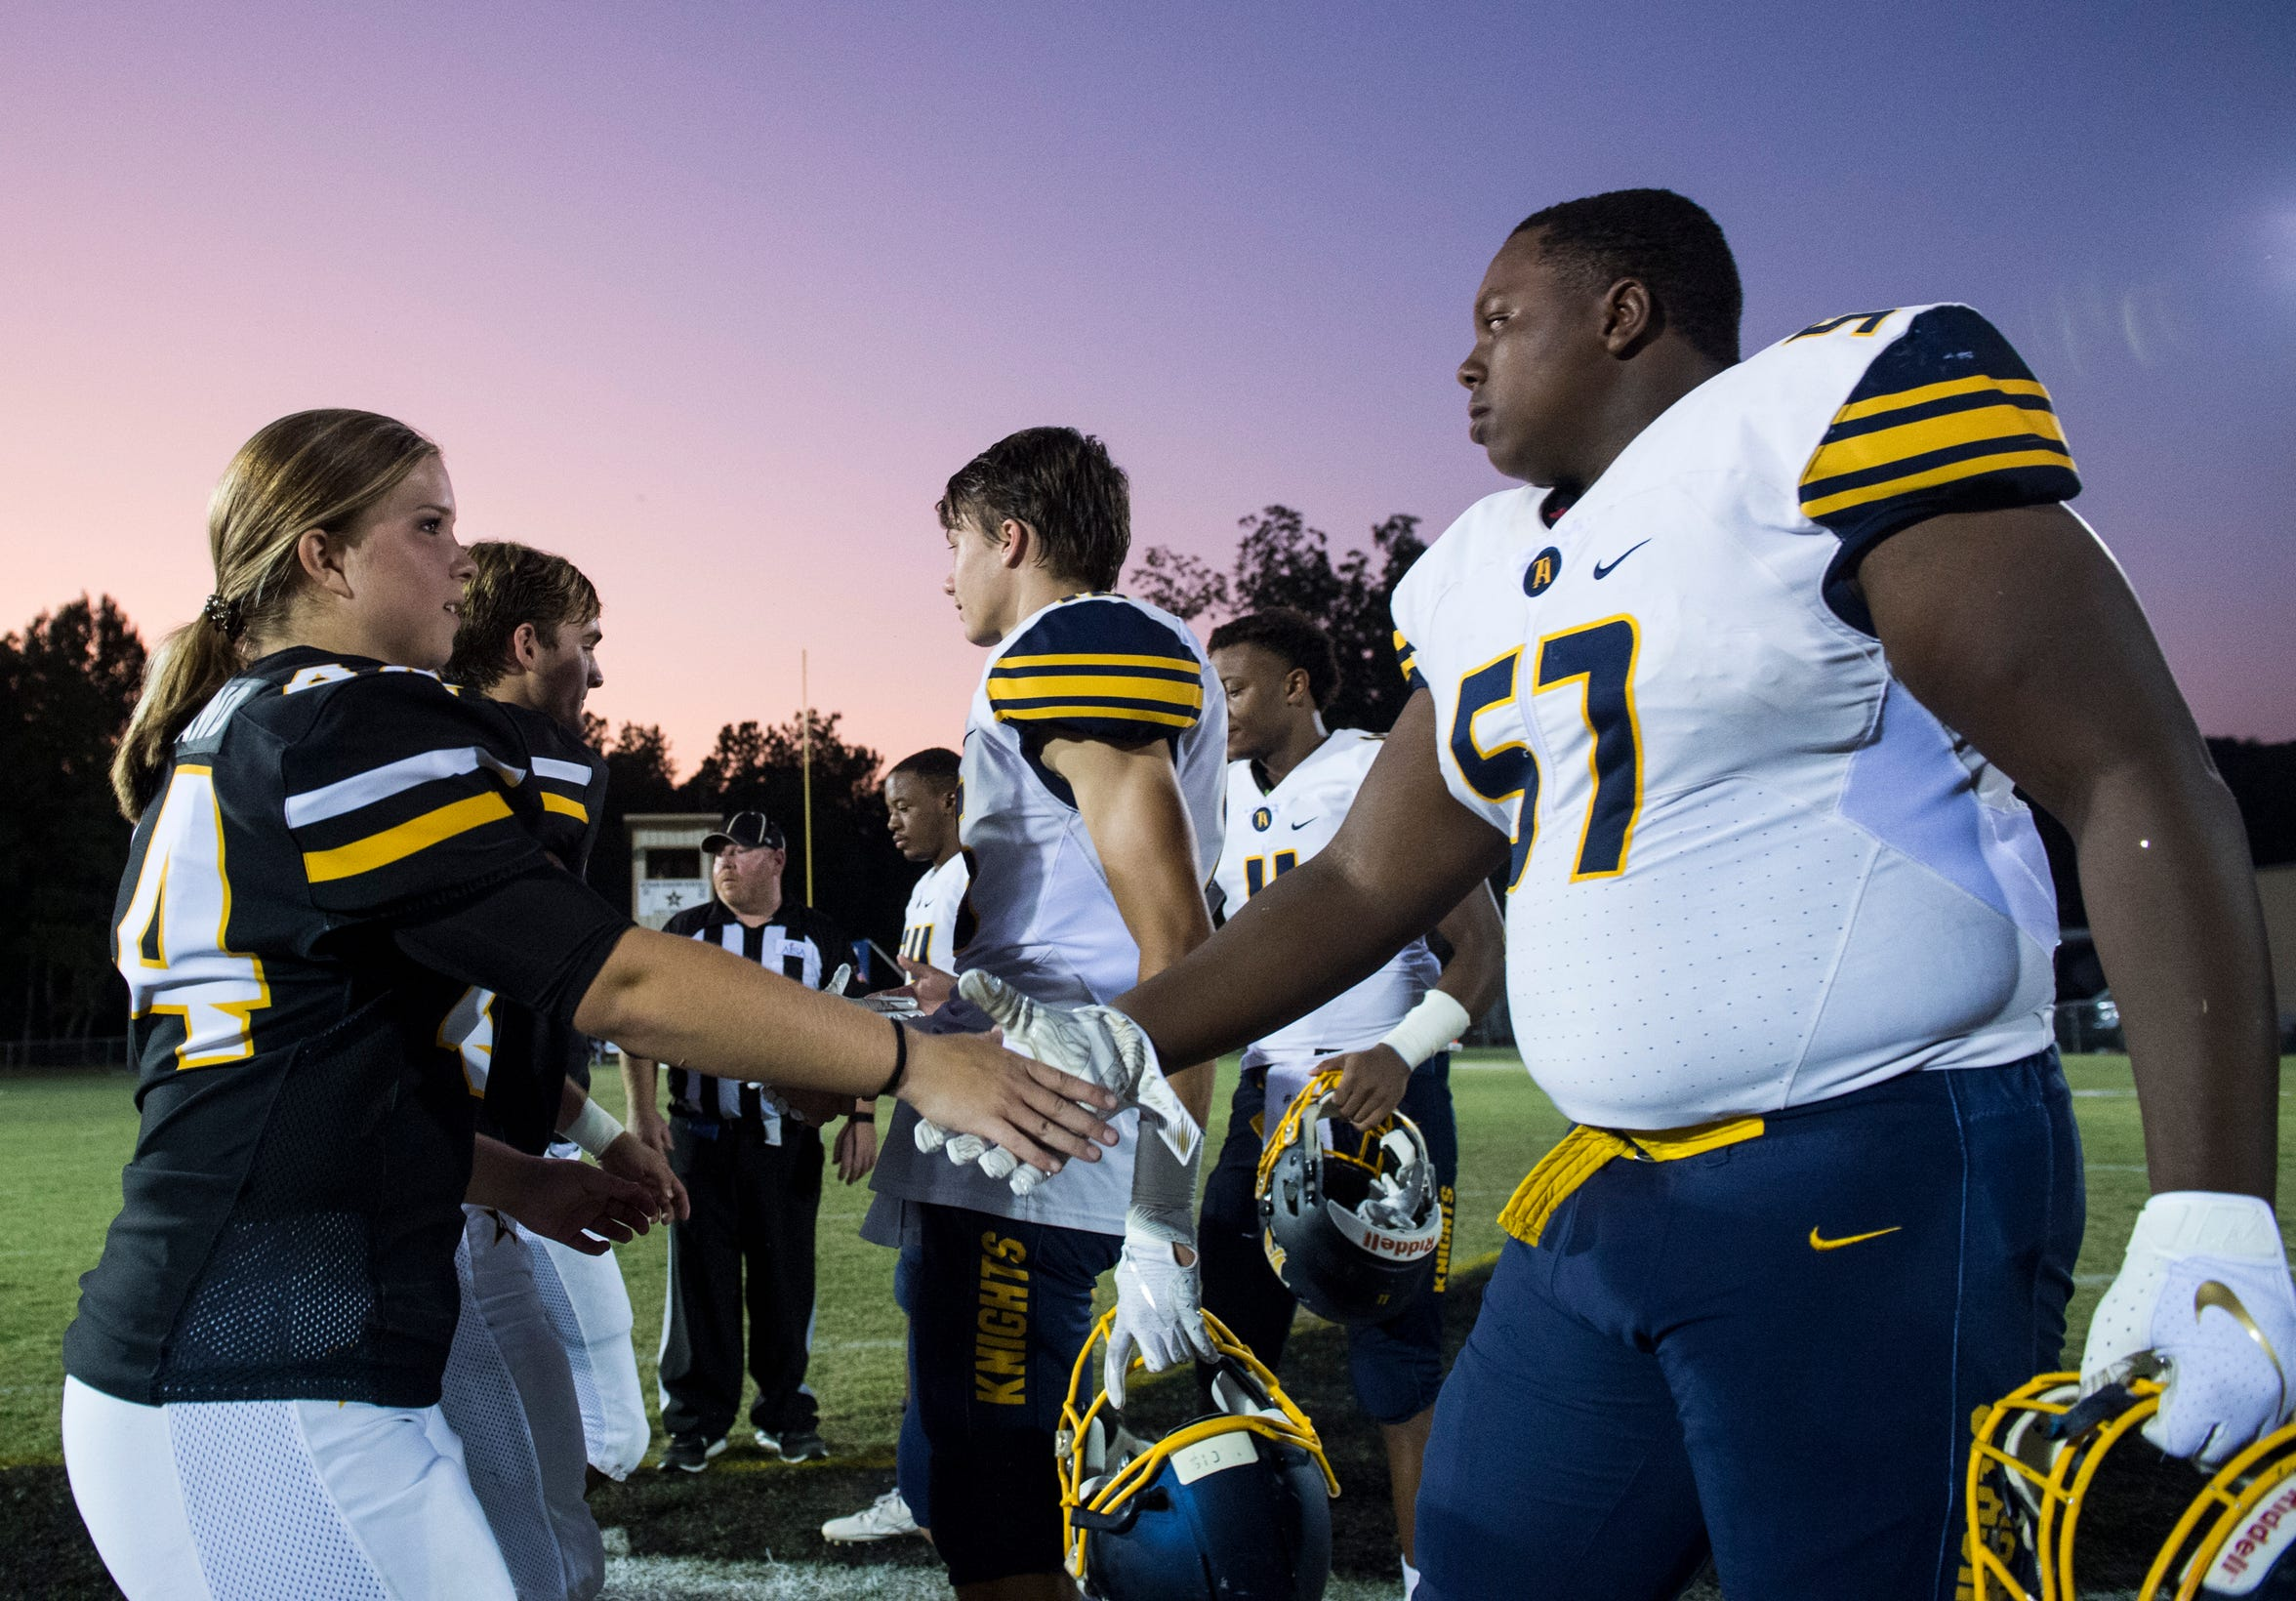 Autauga's Emma Wendland (44) shakes hands with Tuscaloosa Academy players before the coin toss at Autauga Academy in Prattville, Ala., on Friday, Sept. 27, 2019. Autauga Academy defeated Tuscaloosa Academy 40-16.